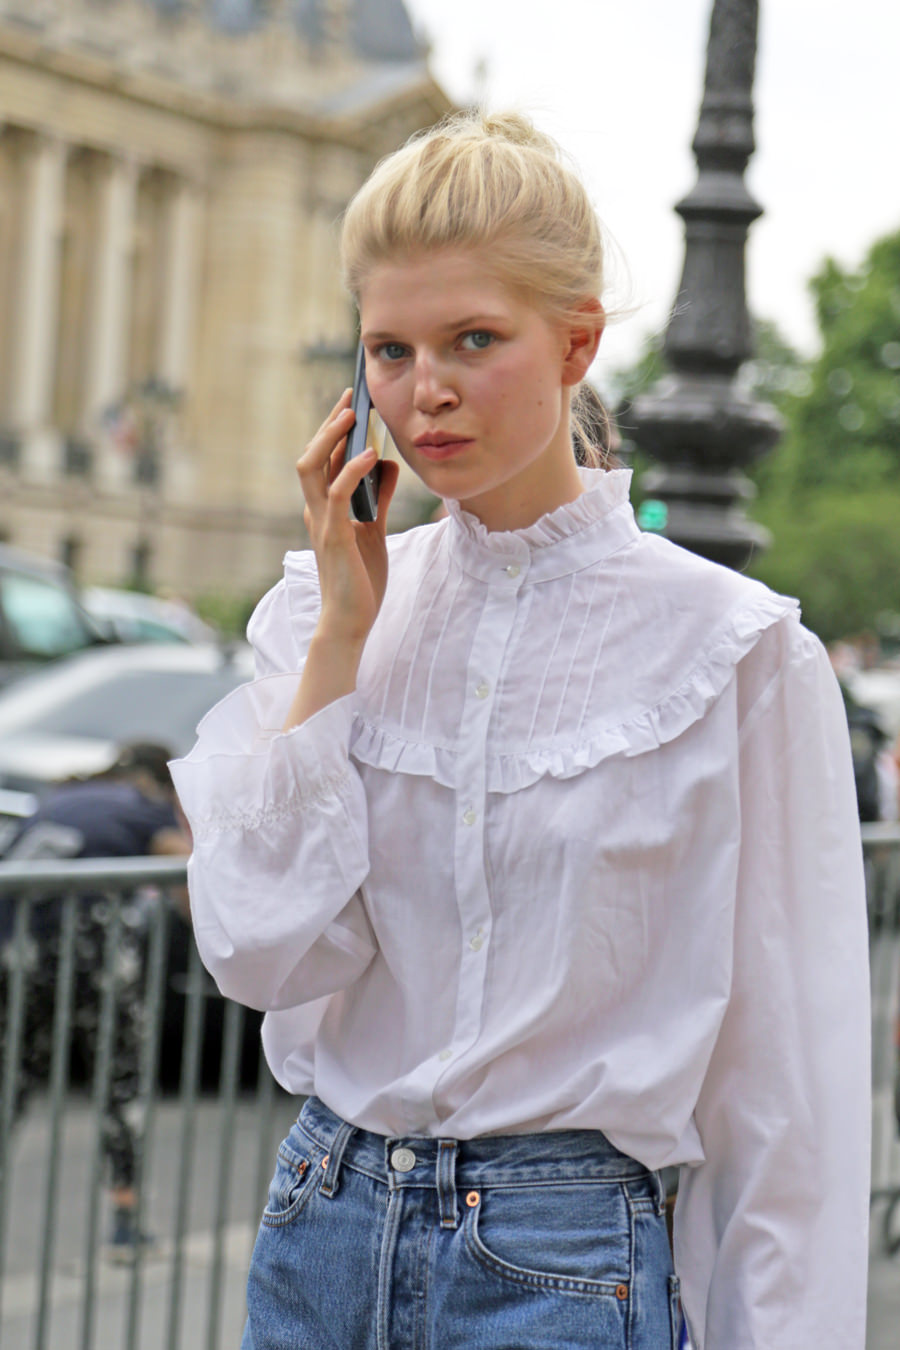 model-off-duty-wearing-a-vintage-white-blouse